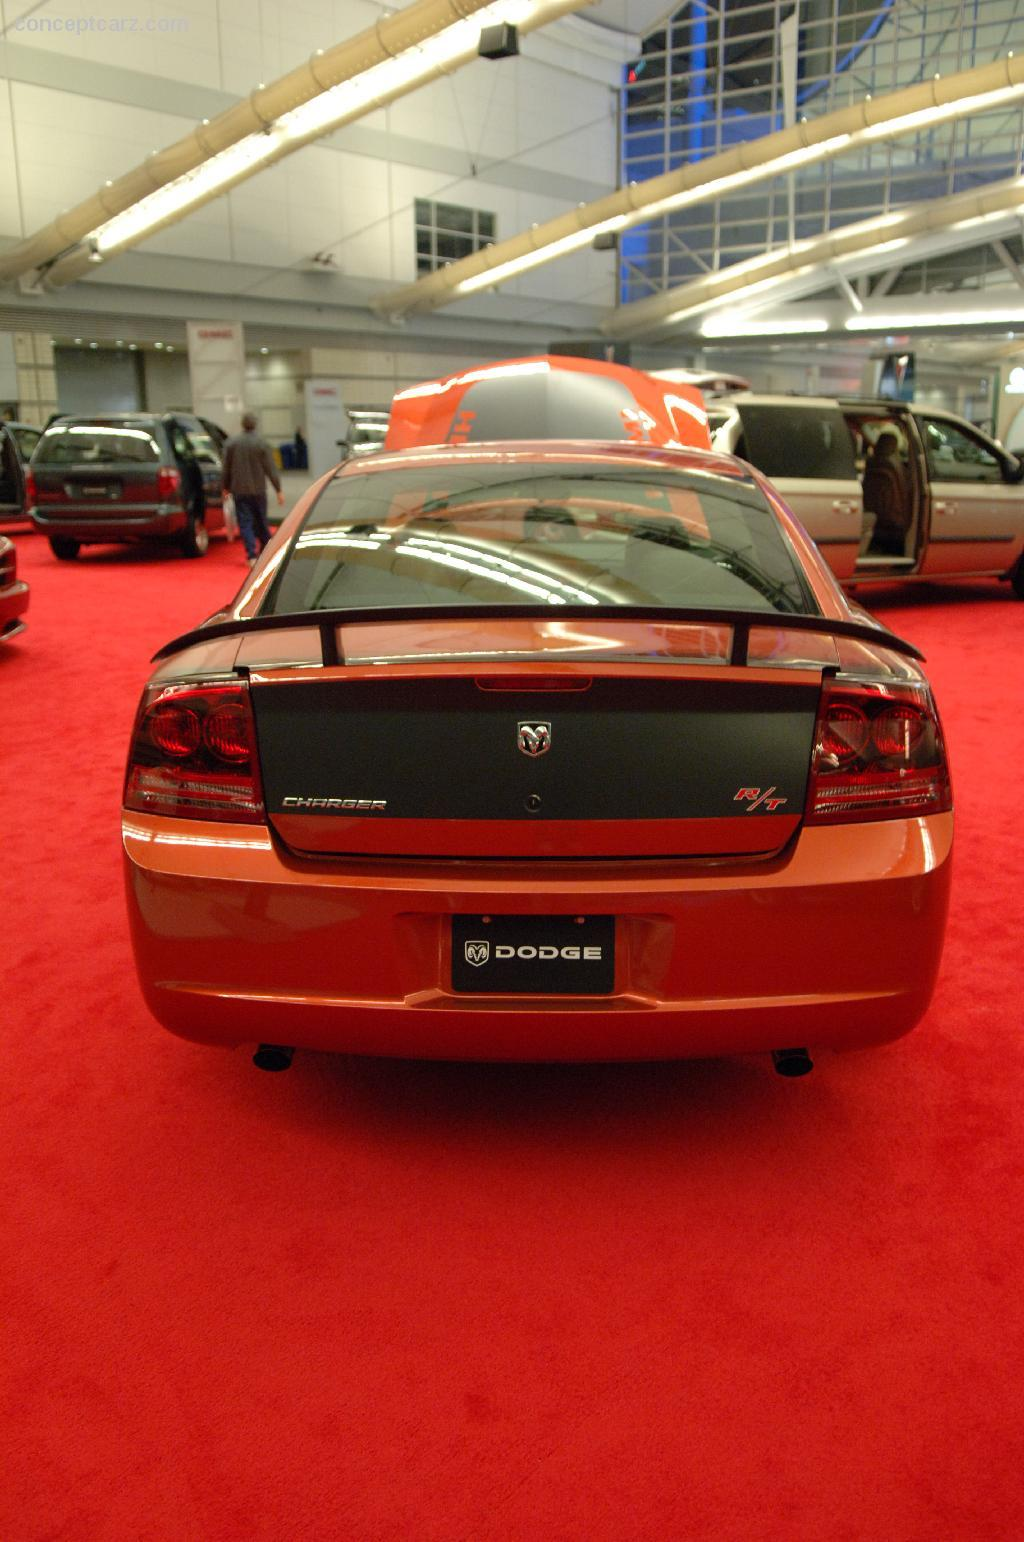 All Types 2006 charger daytona : Auction Results and Sales Data for 2006 Dodge Charger Daytona R/T